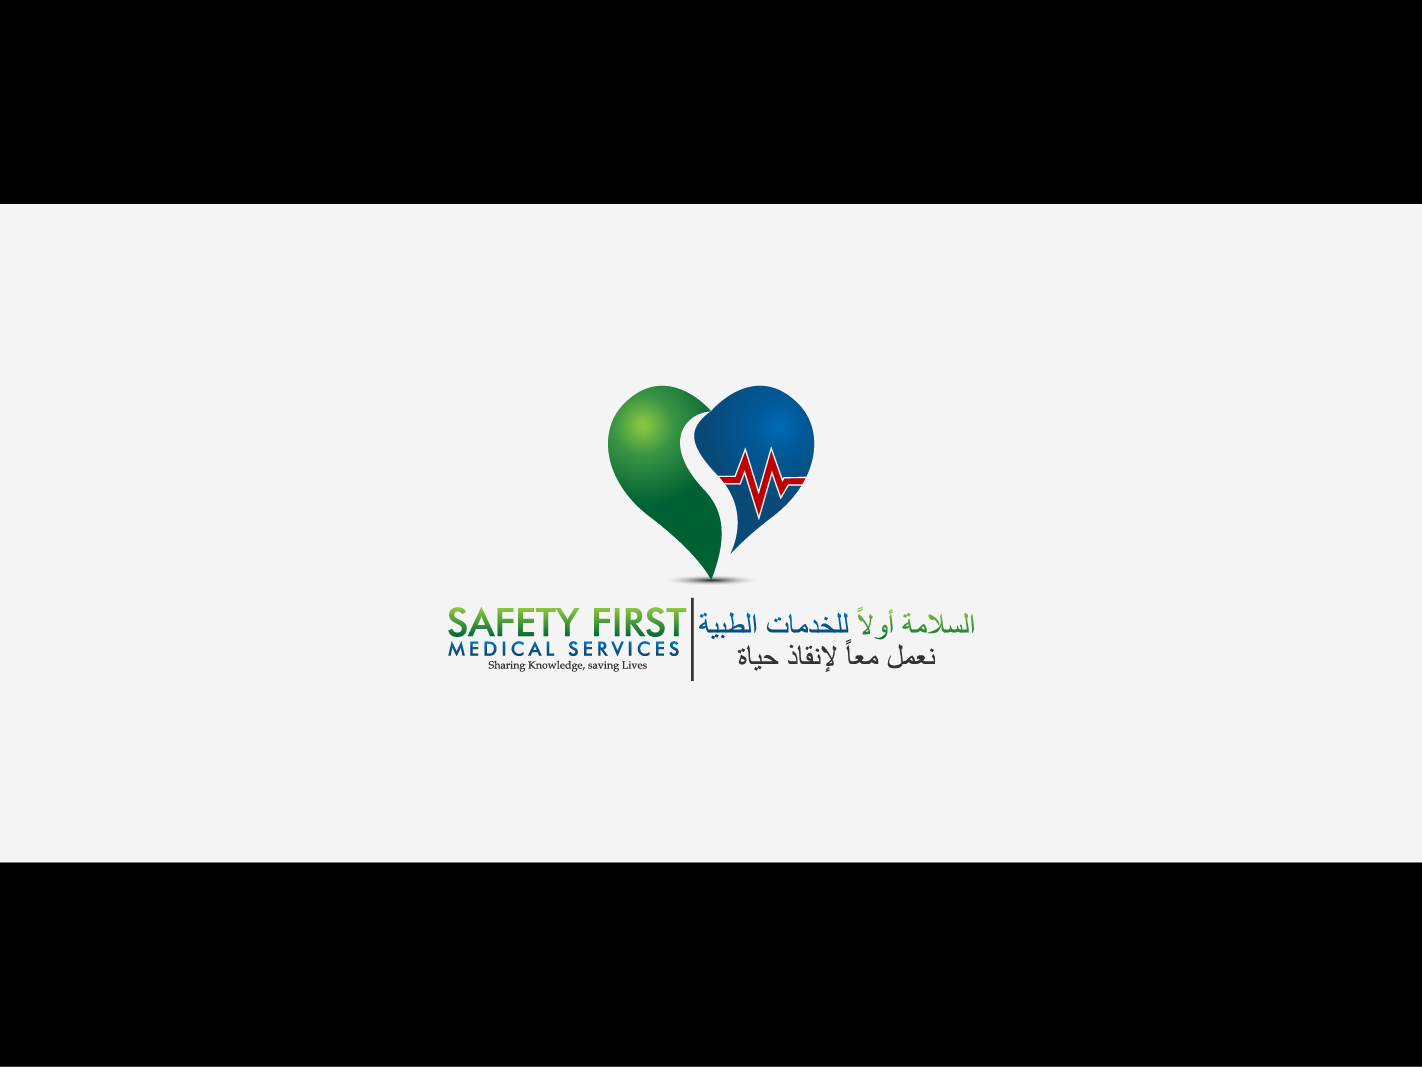 New logo wanted for Safety First Medical Services